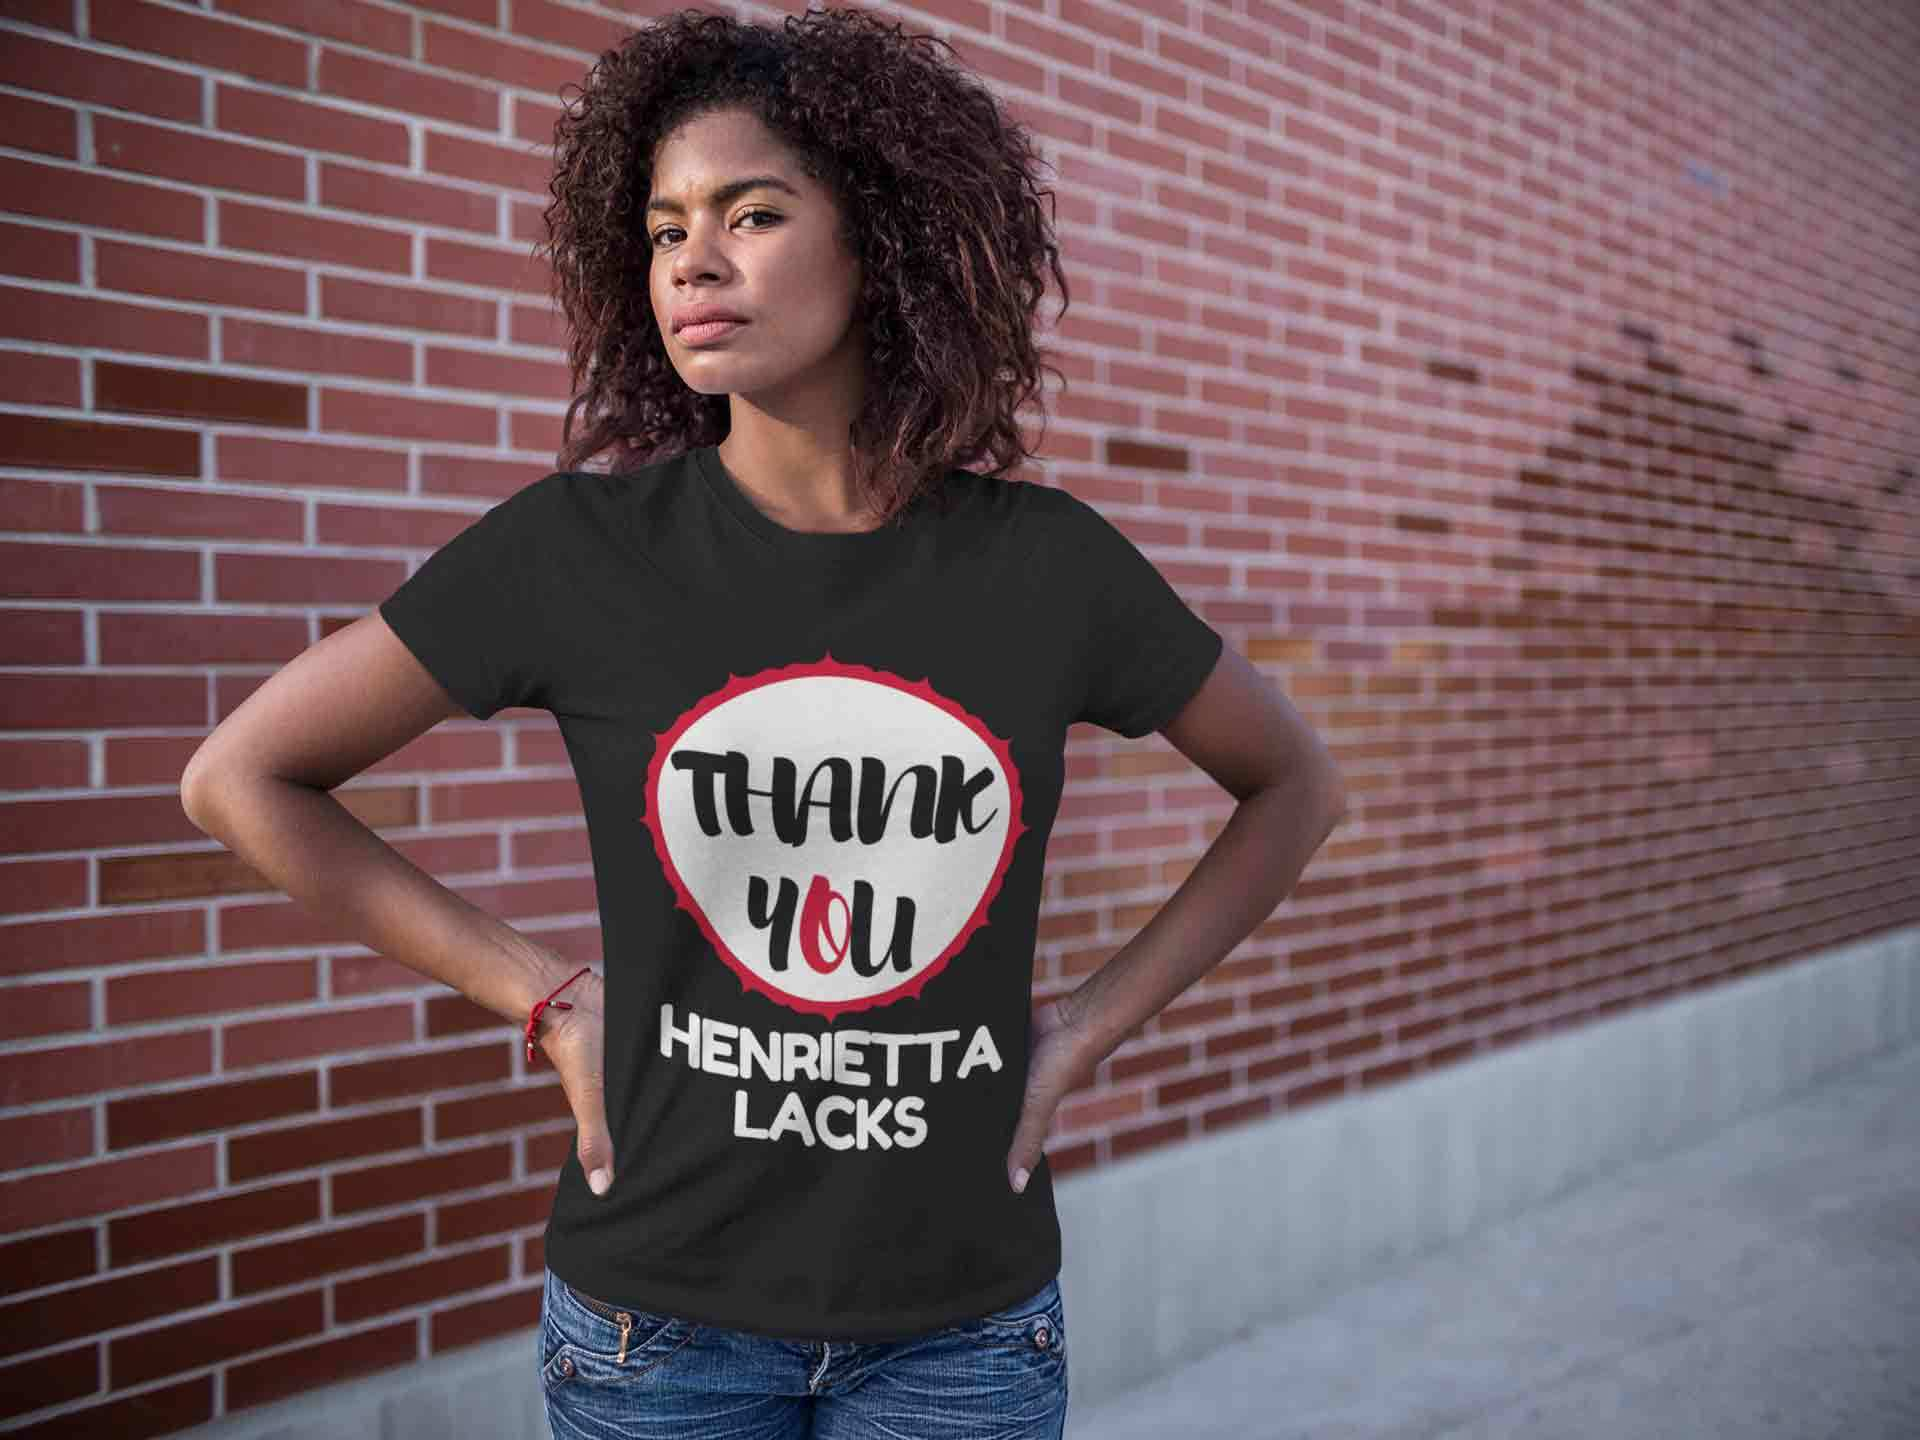 9eb3c83d Thank You Tees was founded by HBCU graduates Stephanie Campbell (Howard  University) and Veronica N. Chapman (Spelman College). The t-shirts provide  people ...